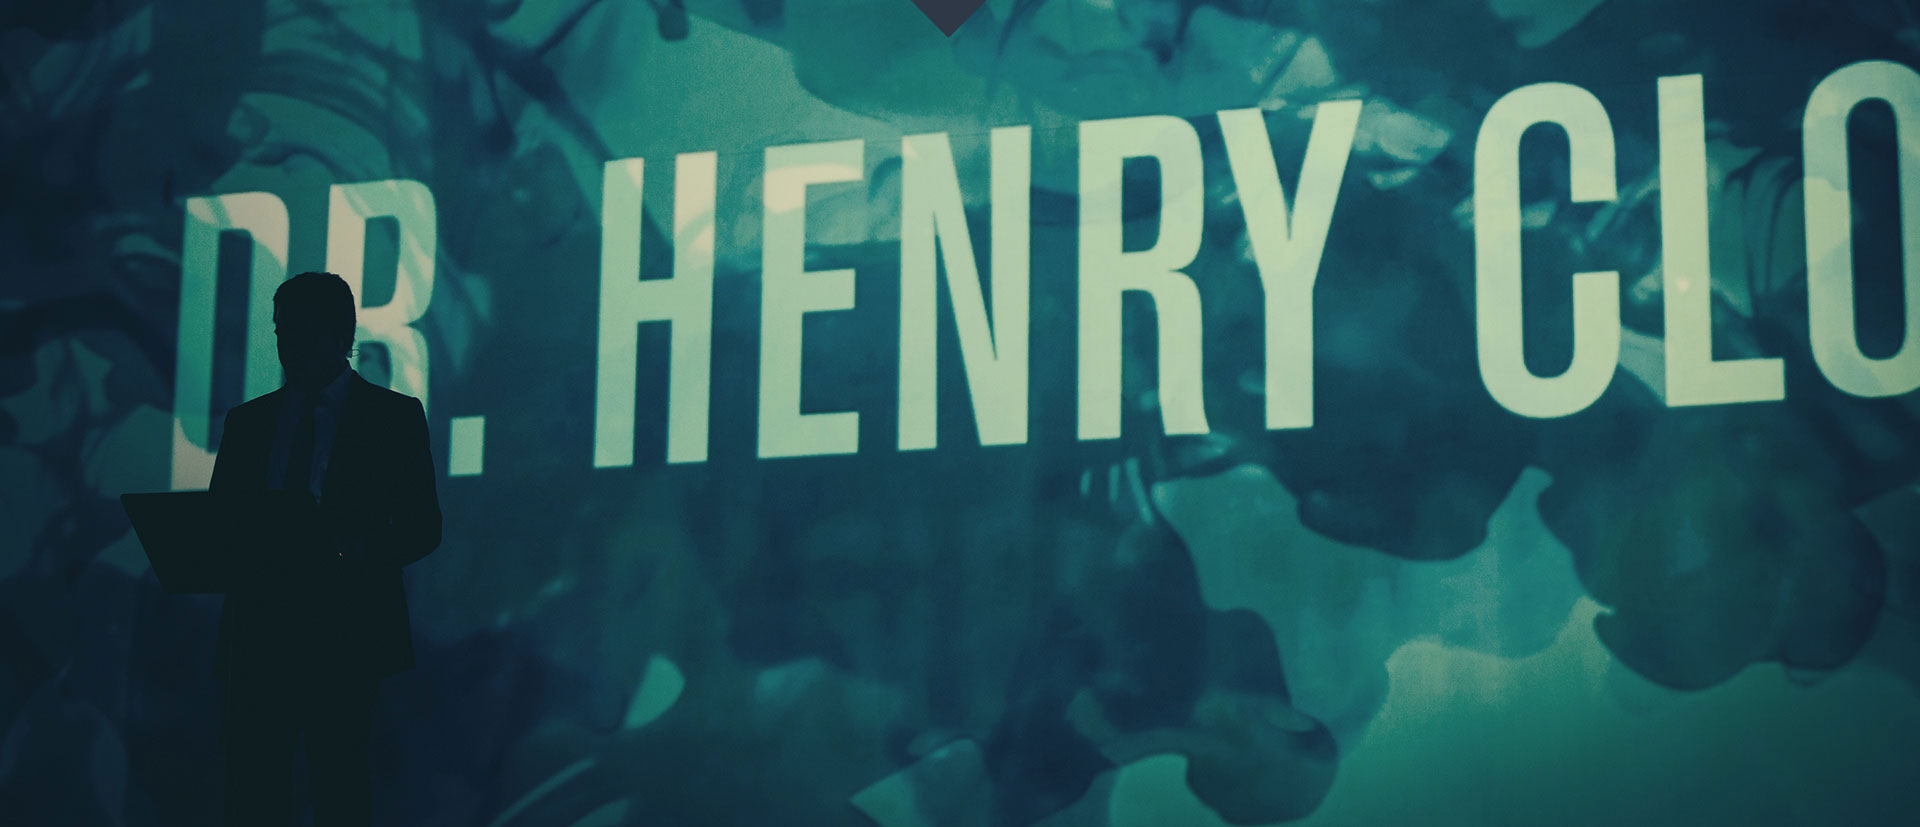 Dr. Henry Cloud silhouette